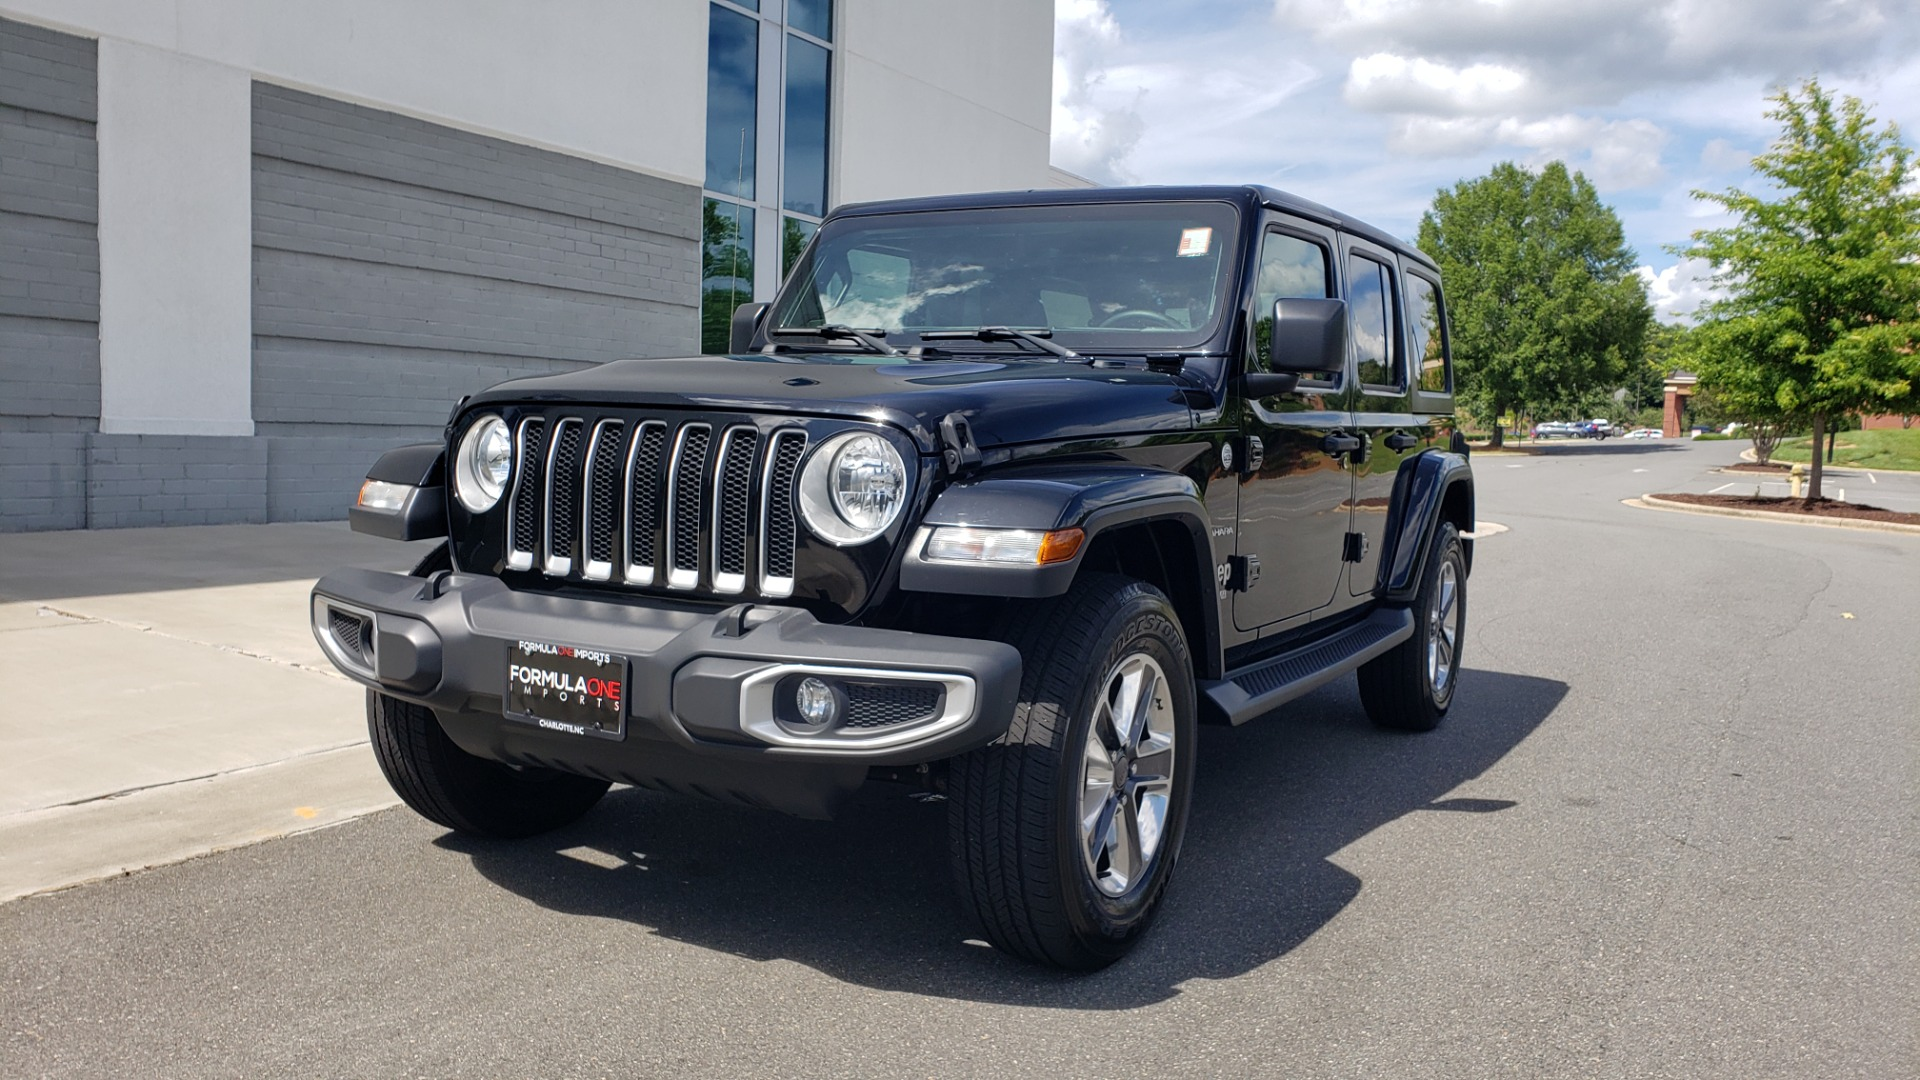 Used 2018 Jeep WRANGLER UNLIMITED SAHARA / 3.6L V6 / 6-SPD MAN / ALPINE / NAV / HTD STS / REARVIEW for sale $43,999 at Formula Imports in Charlotte NC 28227 3